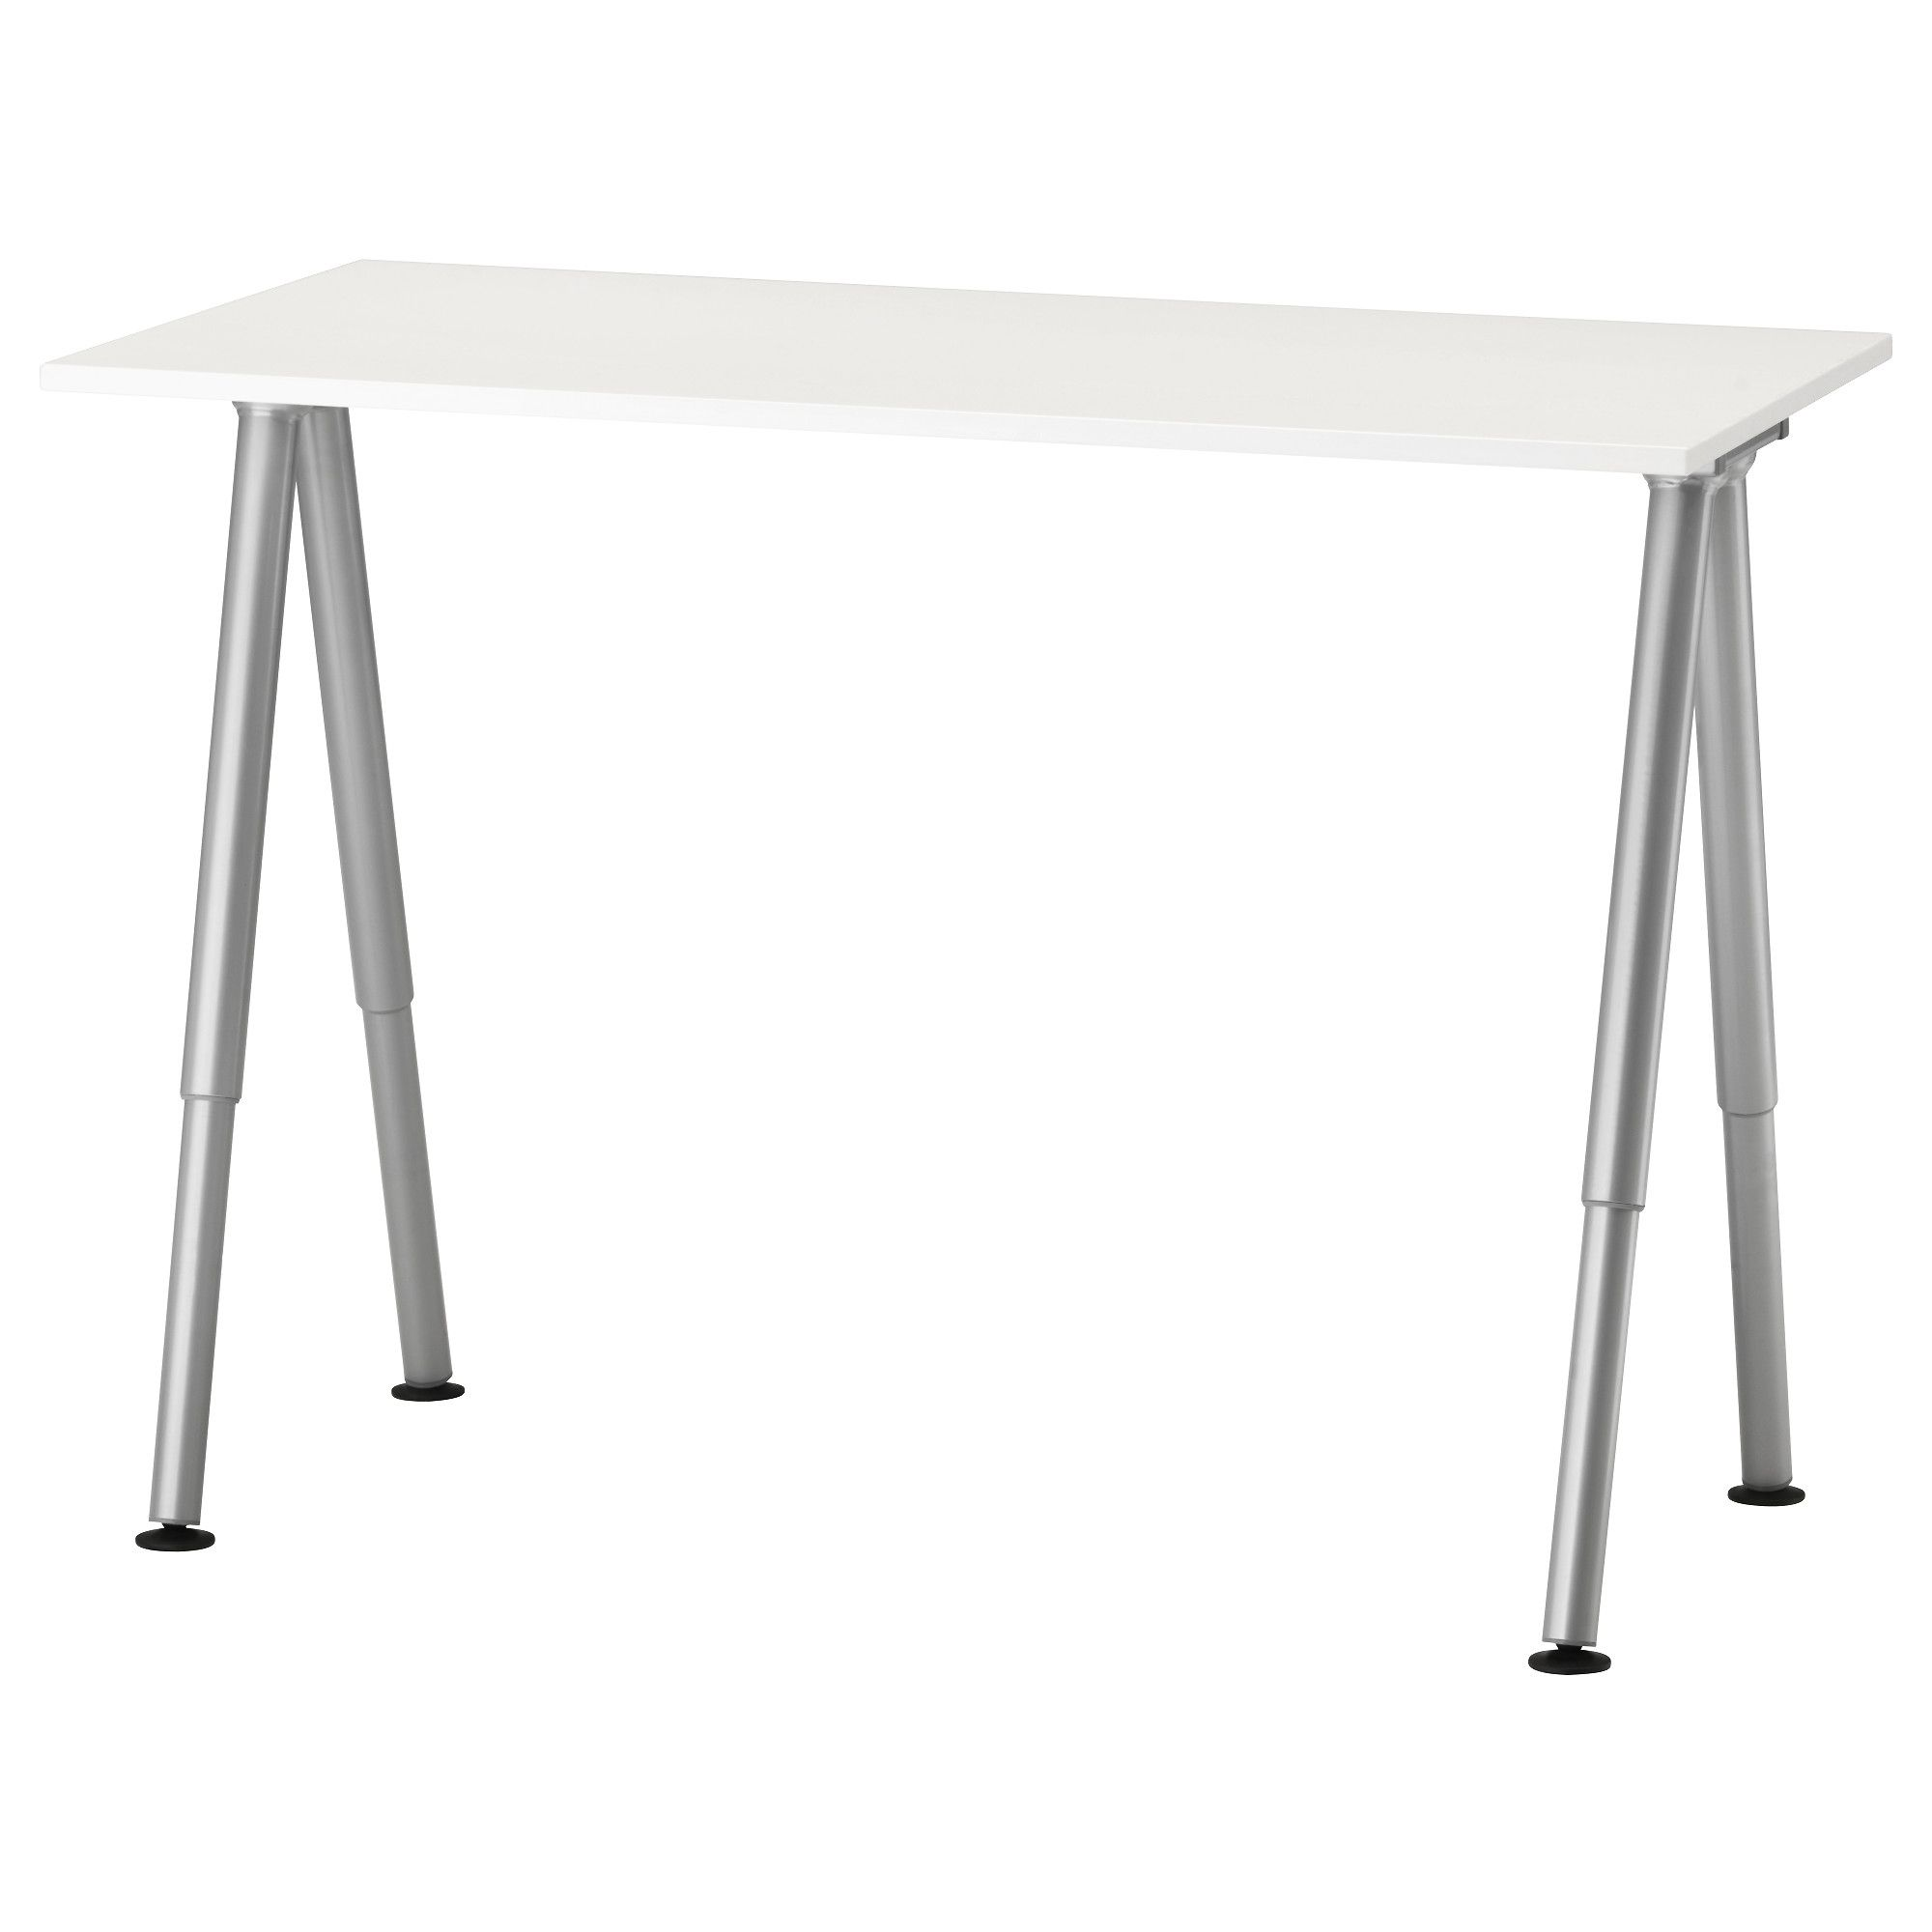 Thyge Desk White Silver Color Ikea Ikea Desk White Office Furniture Round Living Room Table